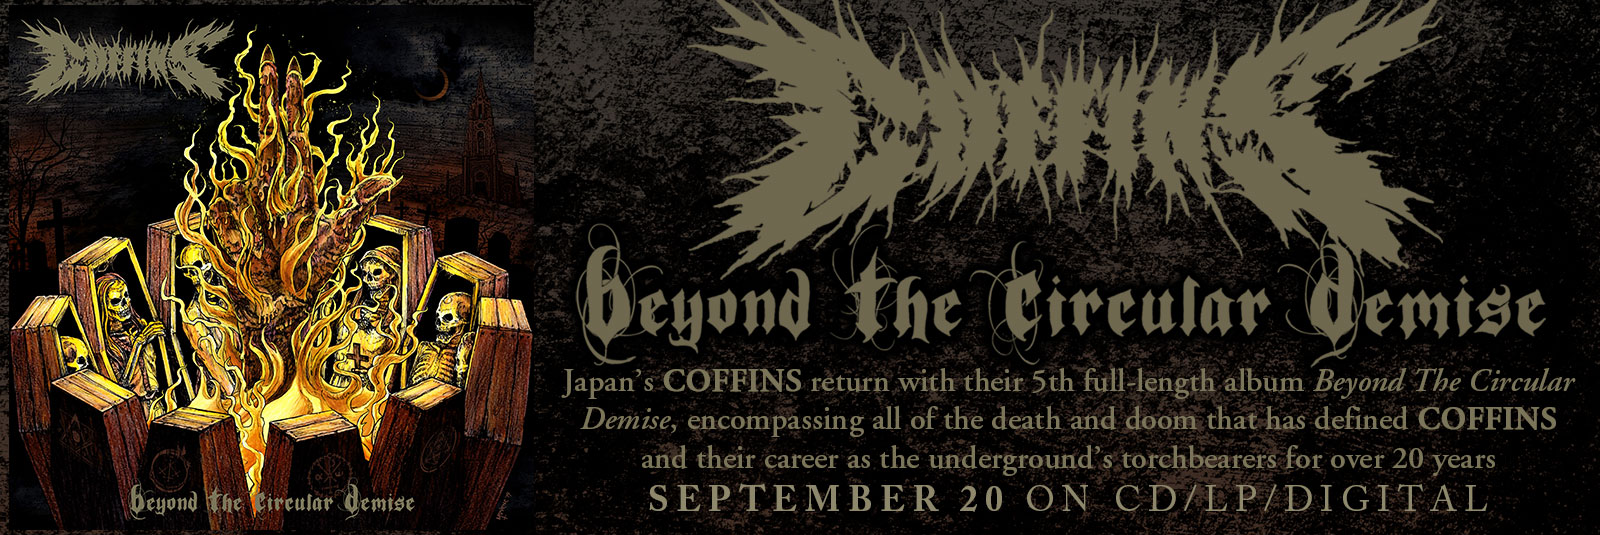 coffins-beyond-the-circular-demise-death-doom-metal-relapse-september-20